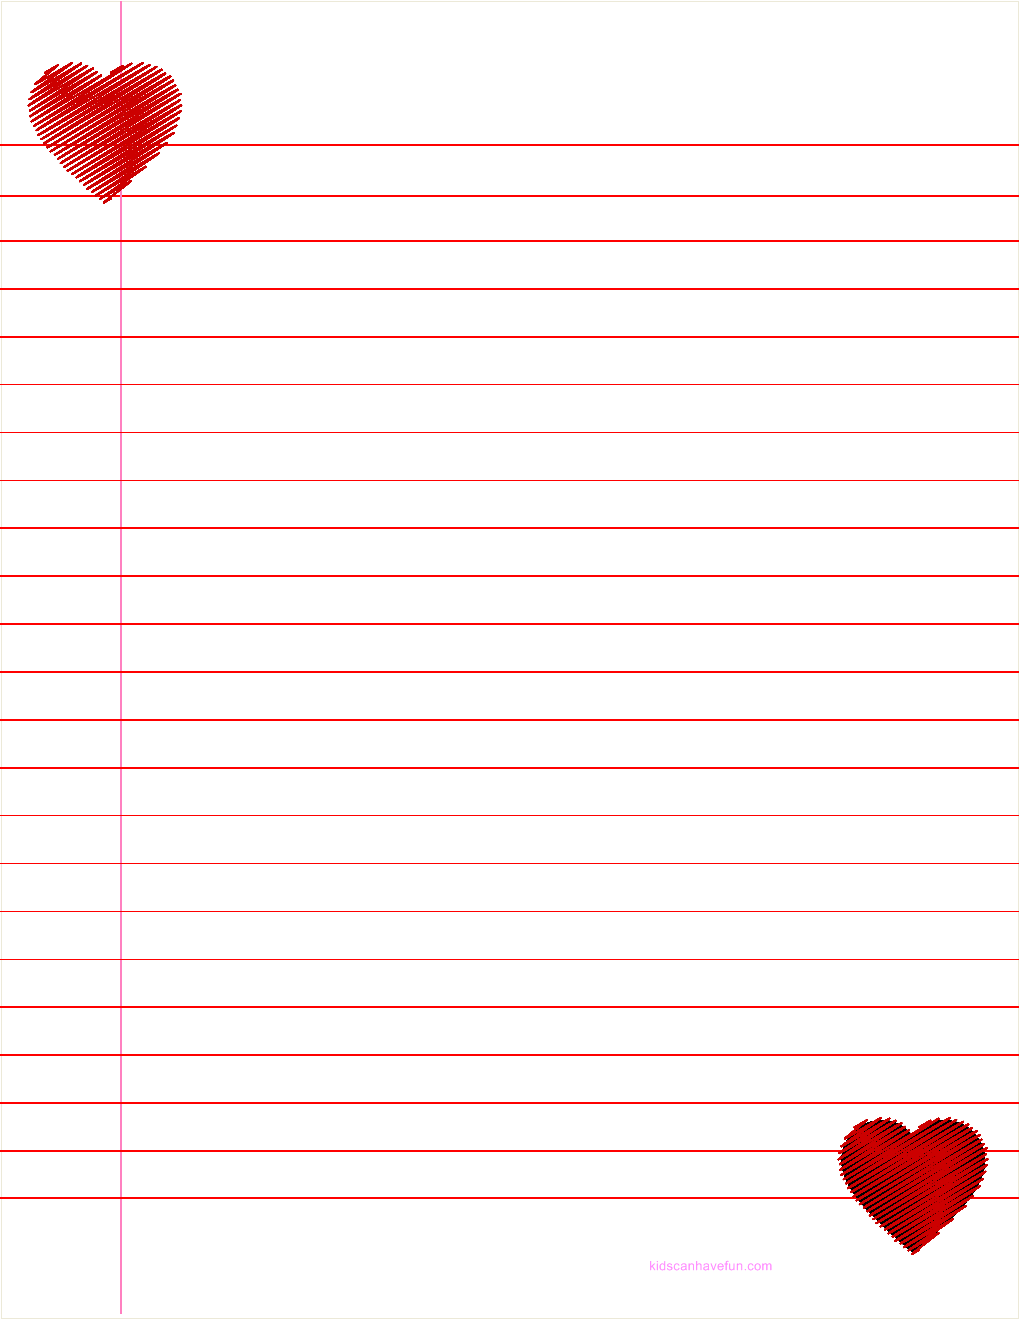 8457f0a85764dfc42378b8f5ce1da6fa Valentine S Day Letter Writing Template on english class, 2nd grade, for first grade, second grade, for kids pdf,